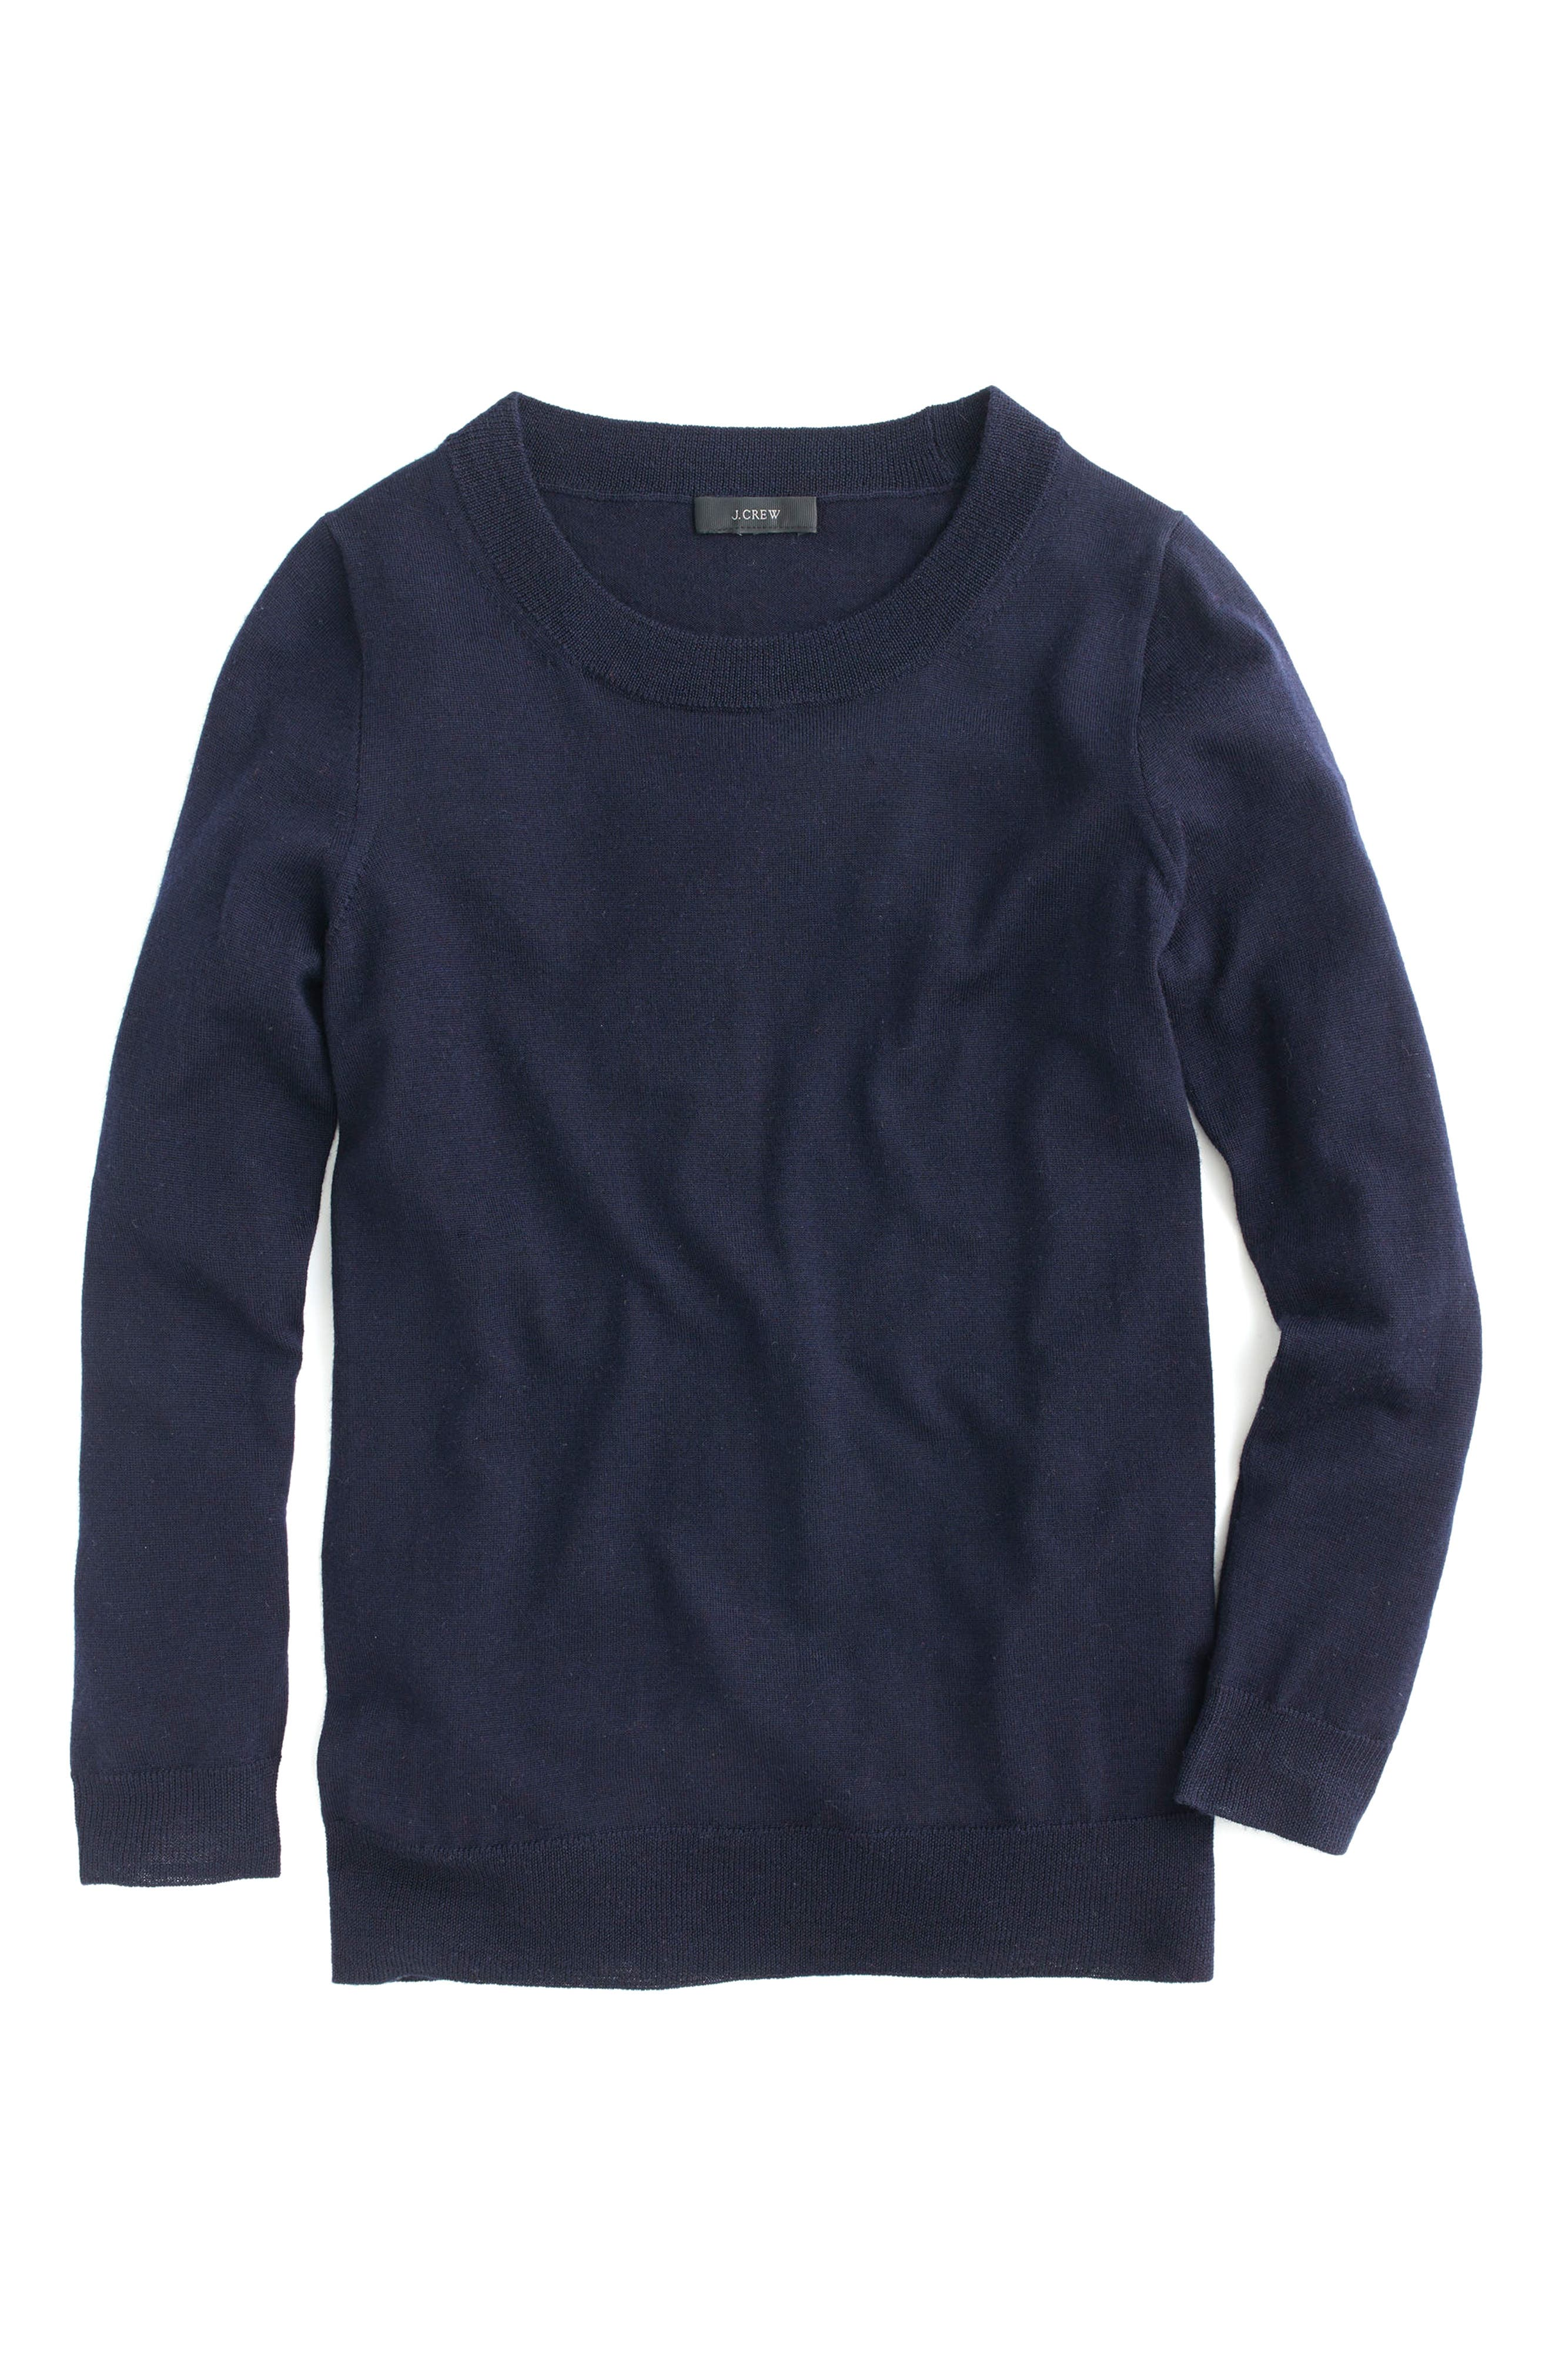 Tippi Merino Wool Sweater,                             Main thumbnail 1, color,                             NAVY